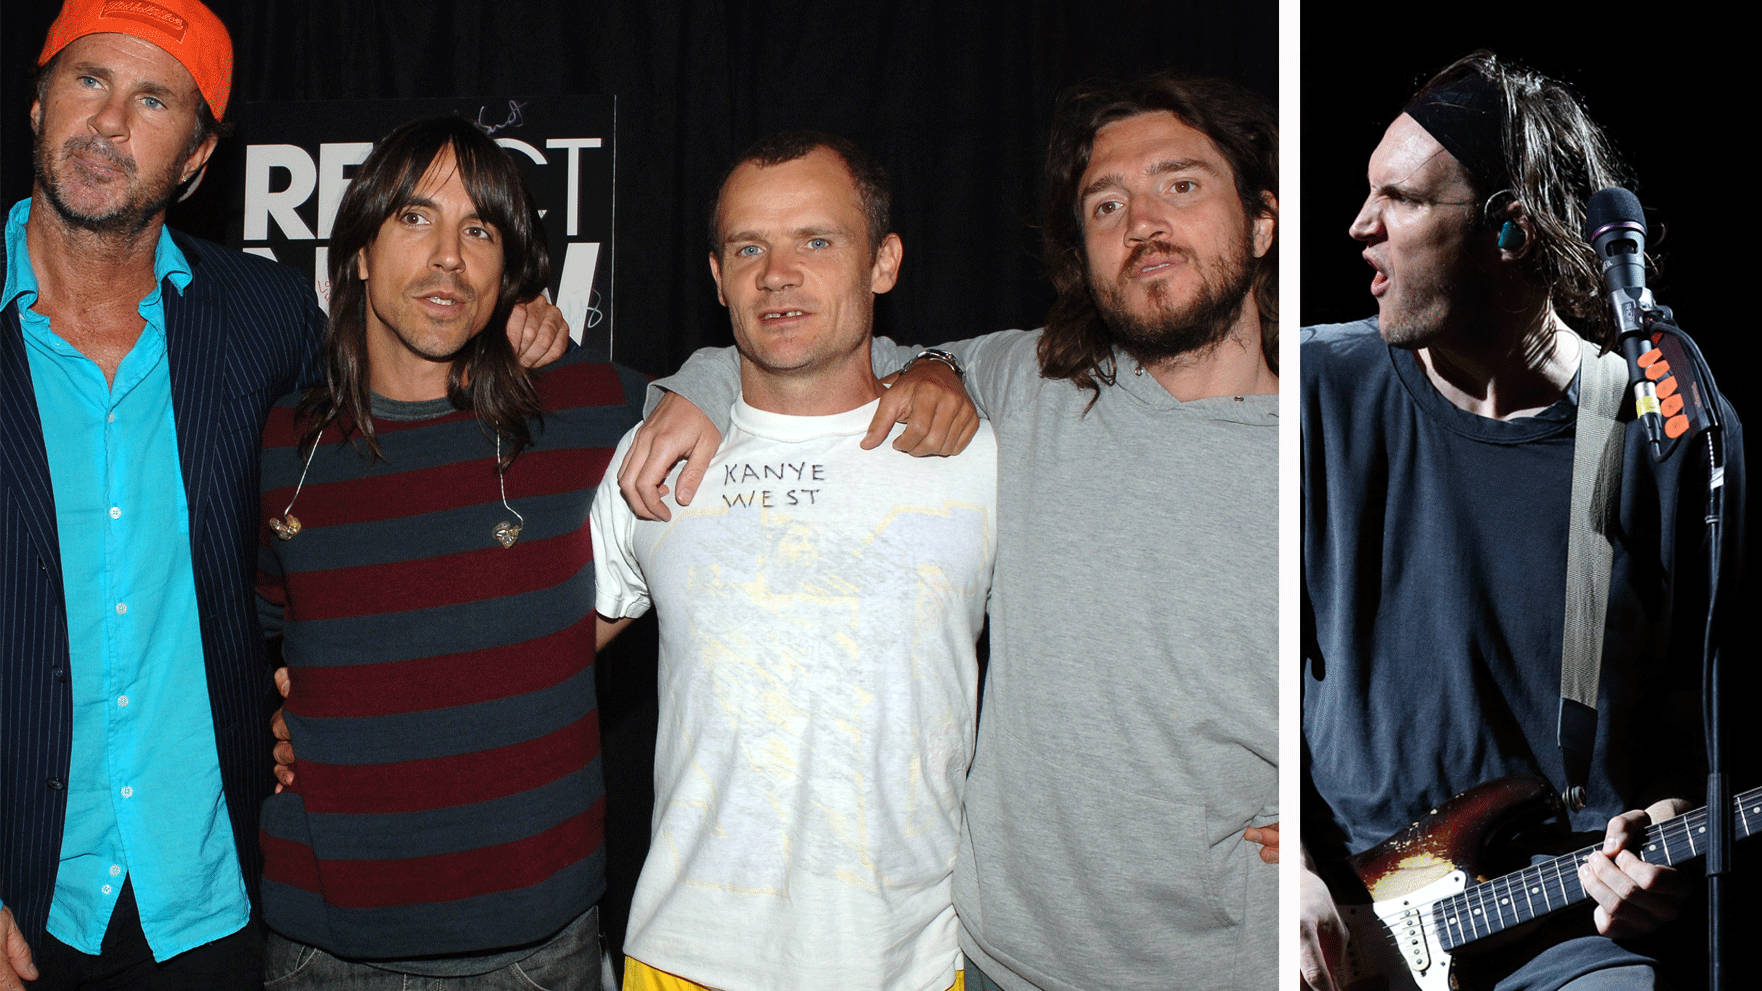 Josh Klinghoffer reveals if there's any hard feelings over Red Hot Chili Peppers exit